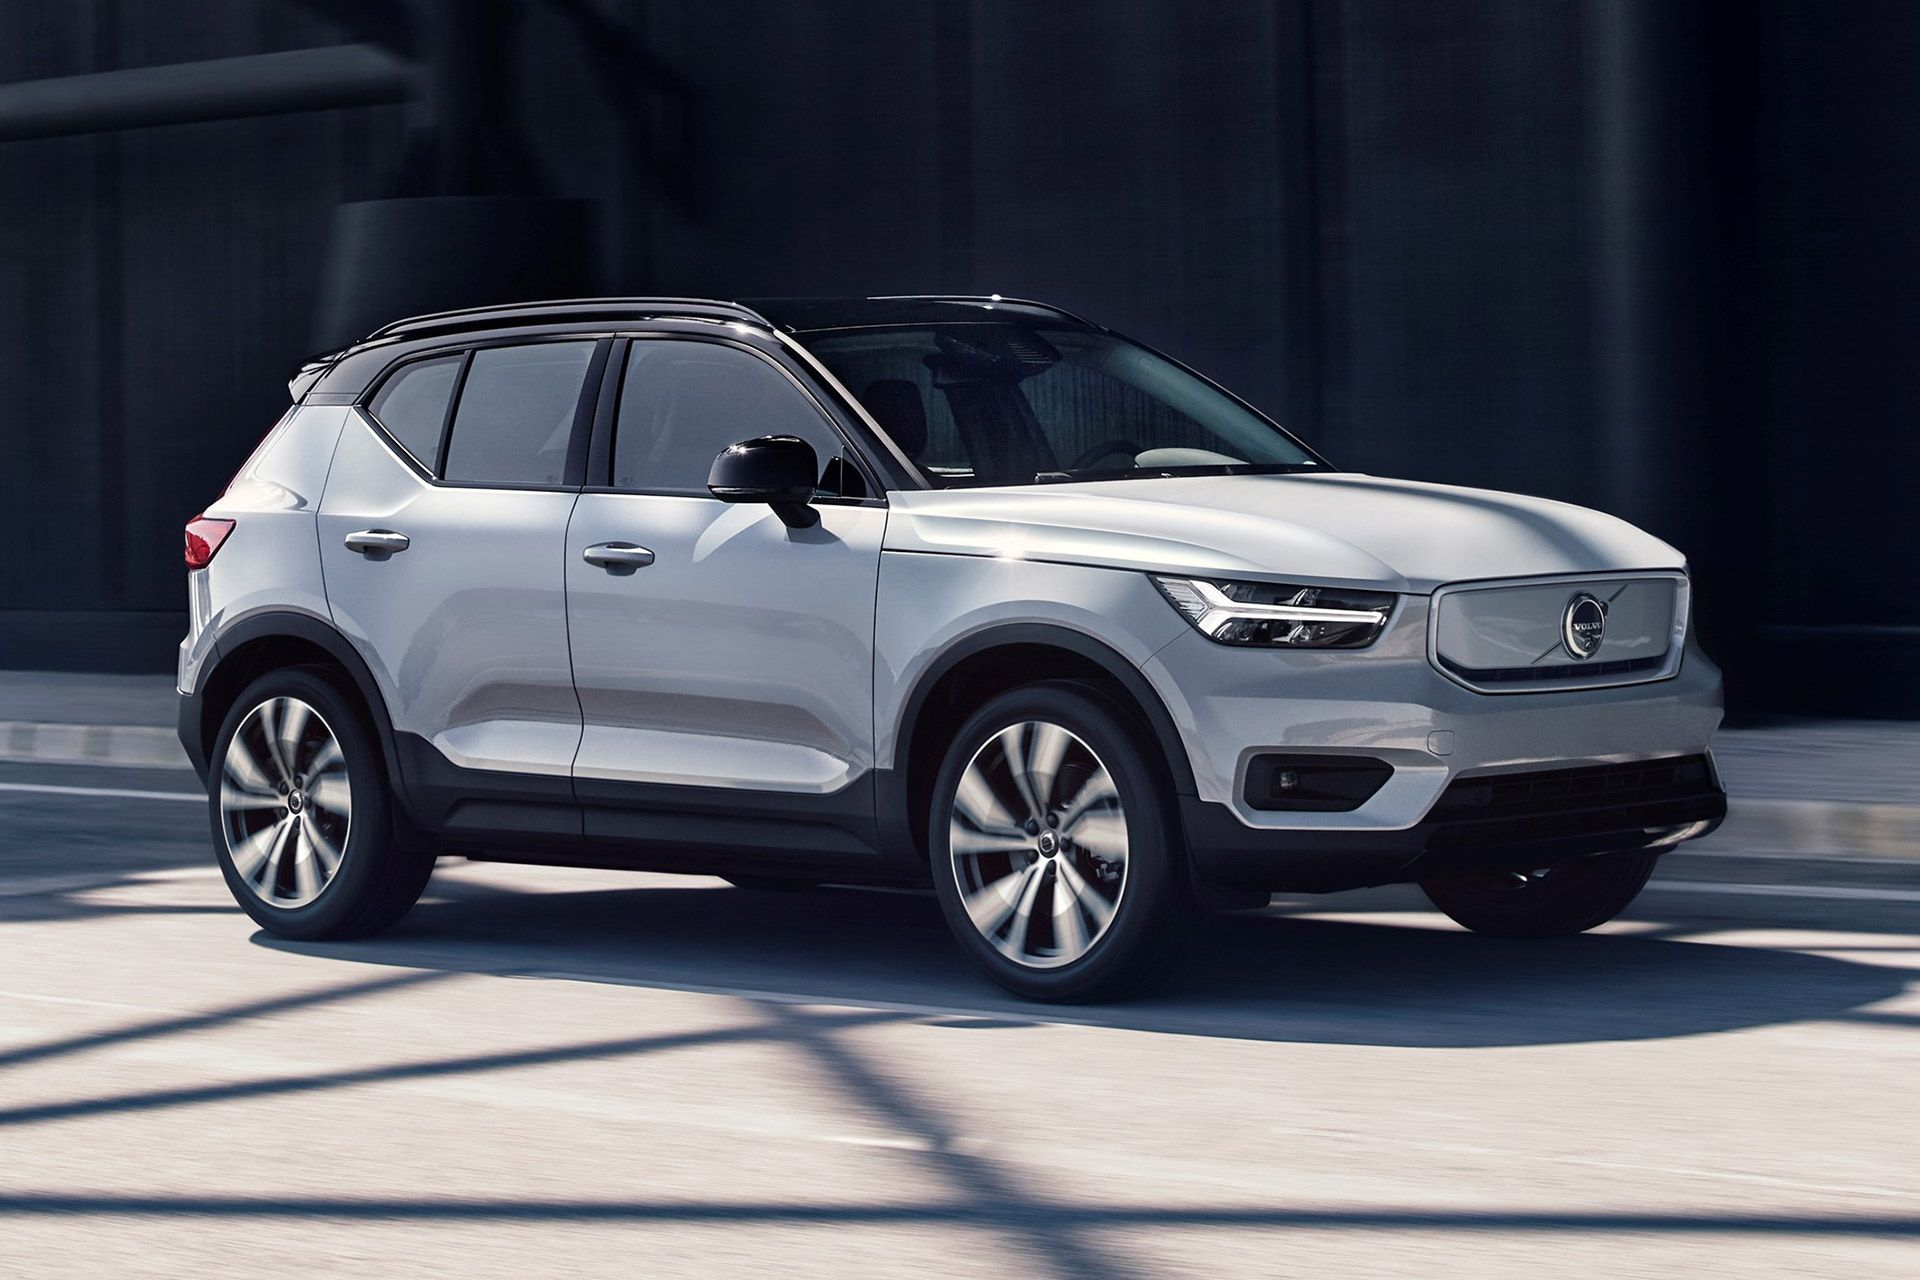 Based on the award-winning XC40 compact SUV, the 2020 XC40 Recharge is Volvo's first all-electric car and the first in a whole line of all-electric...